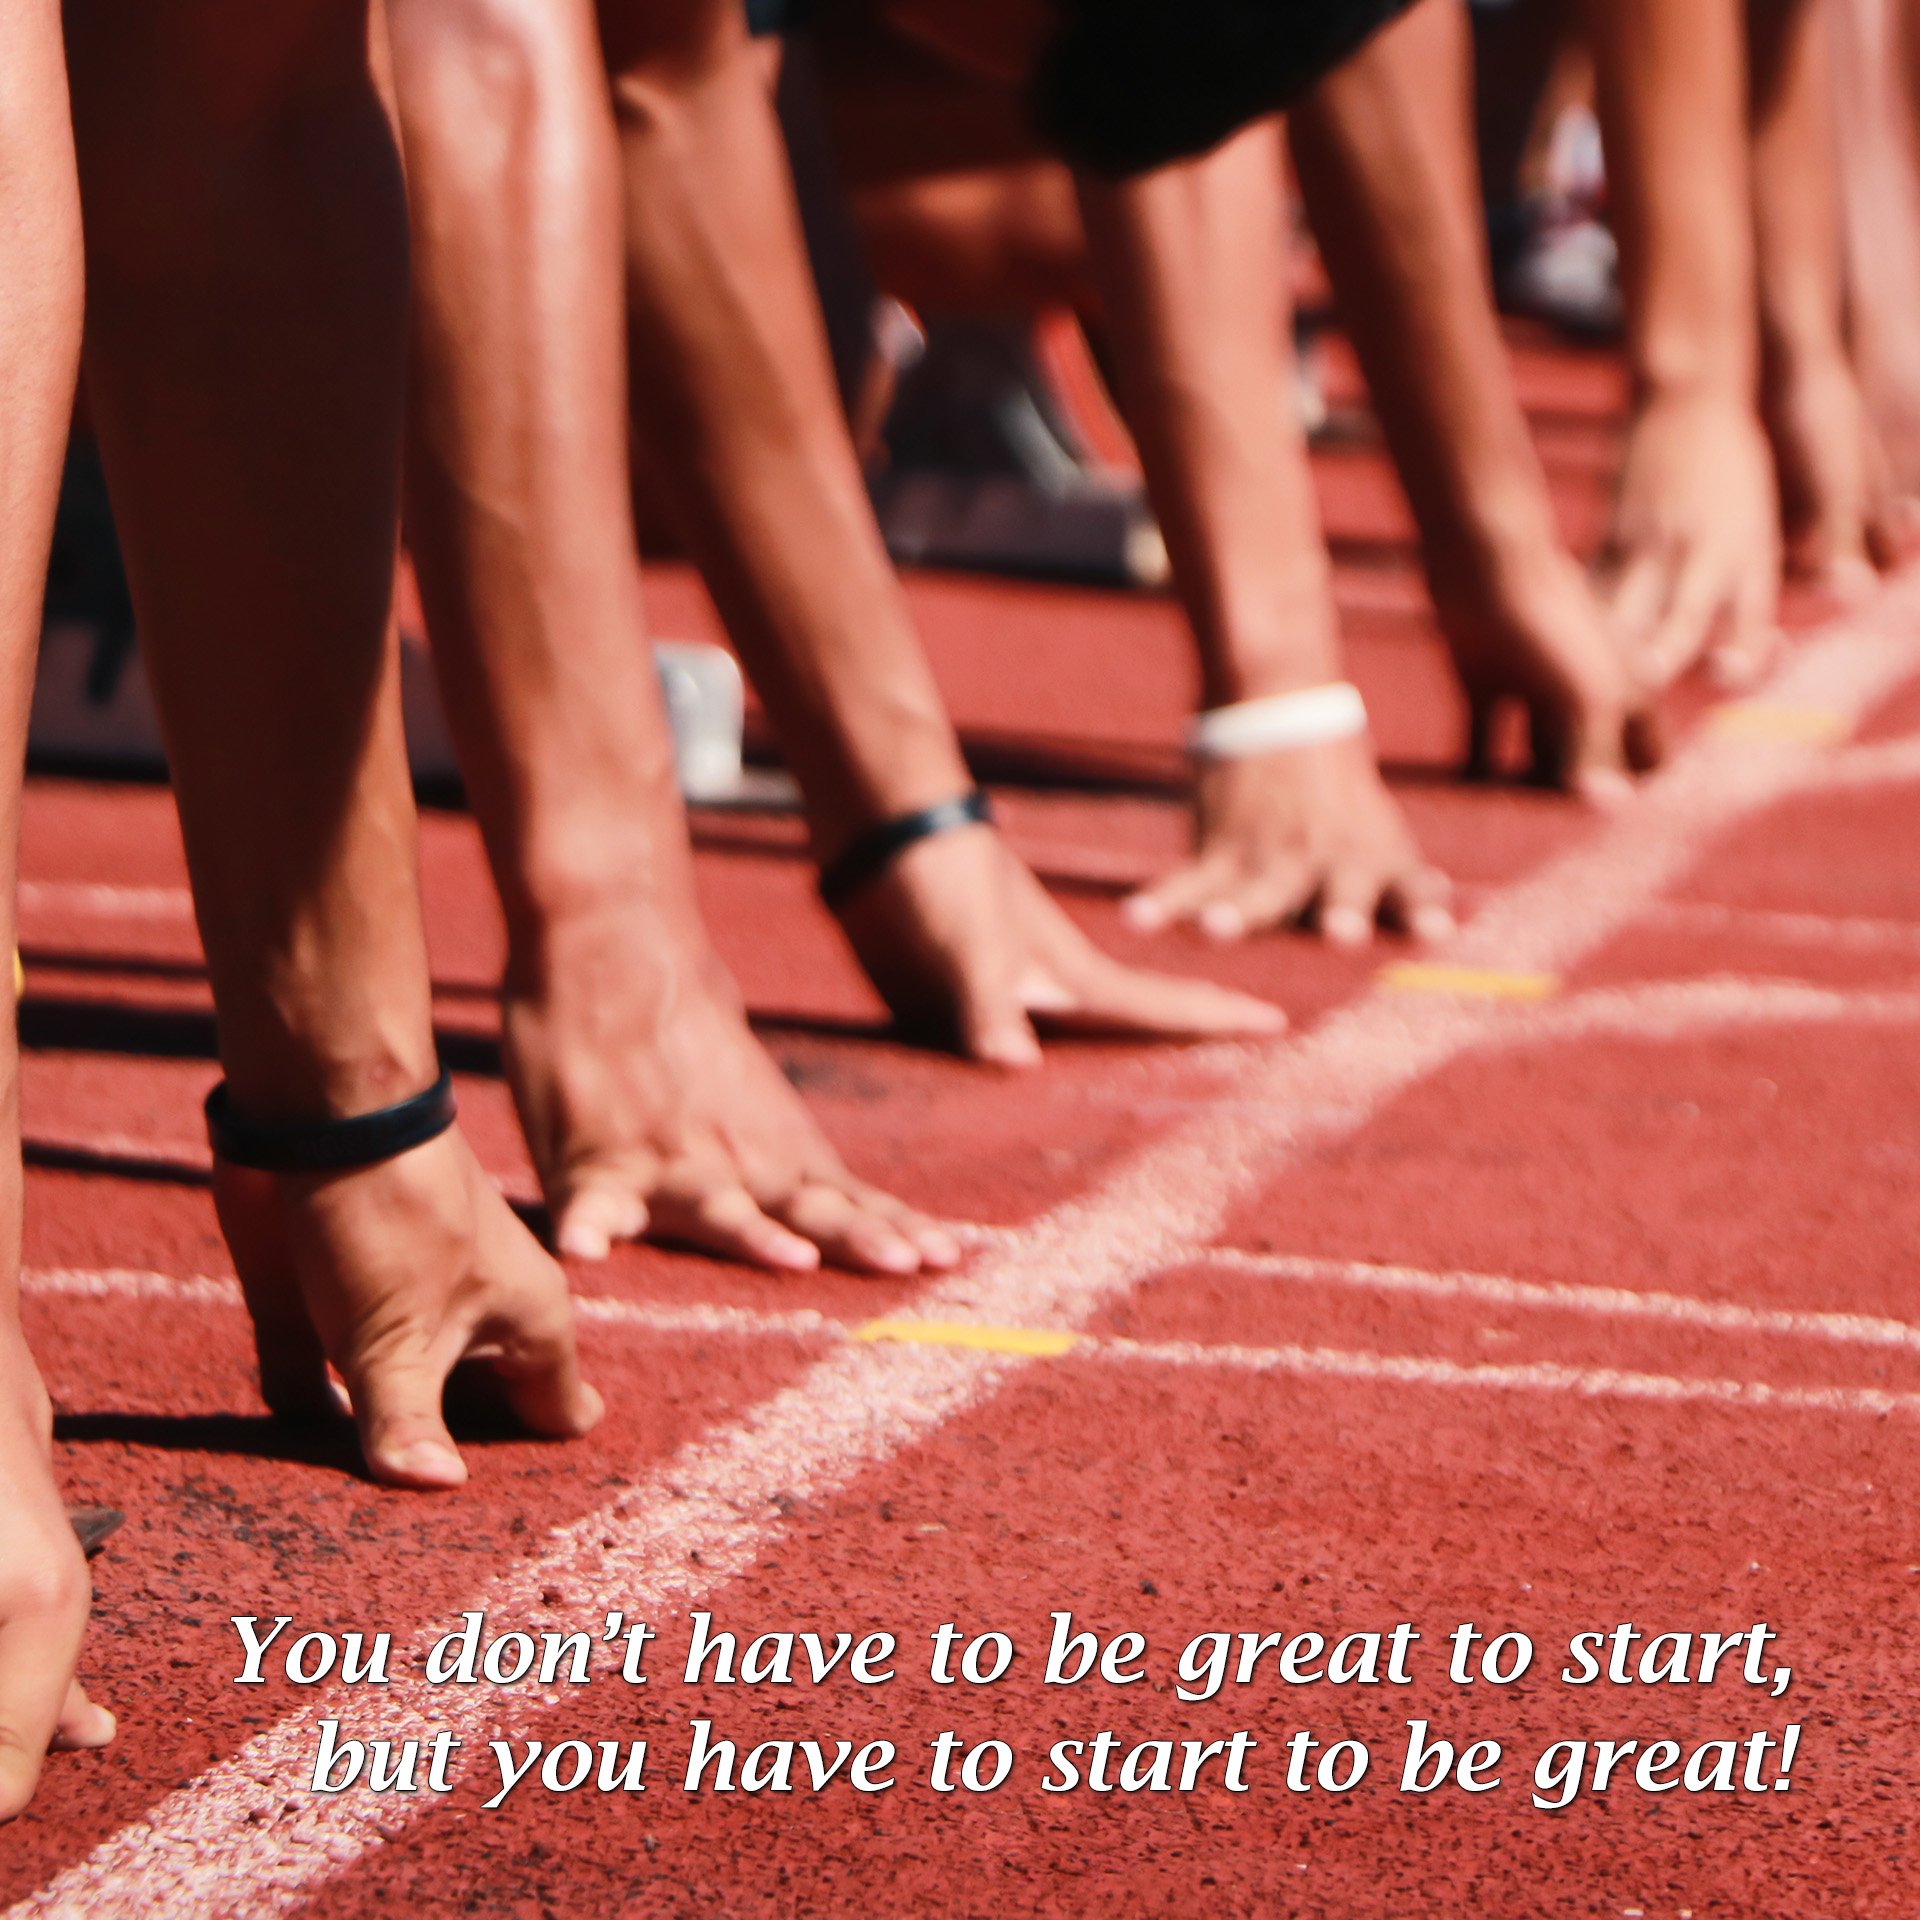 You don't have to be great to start, but you have to start to be great!